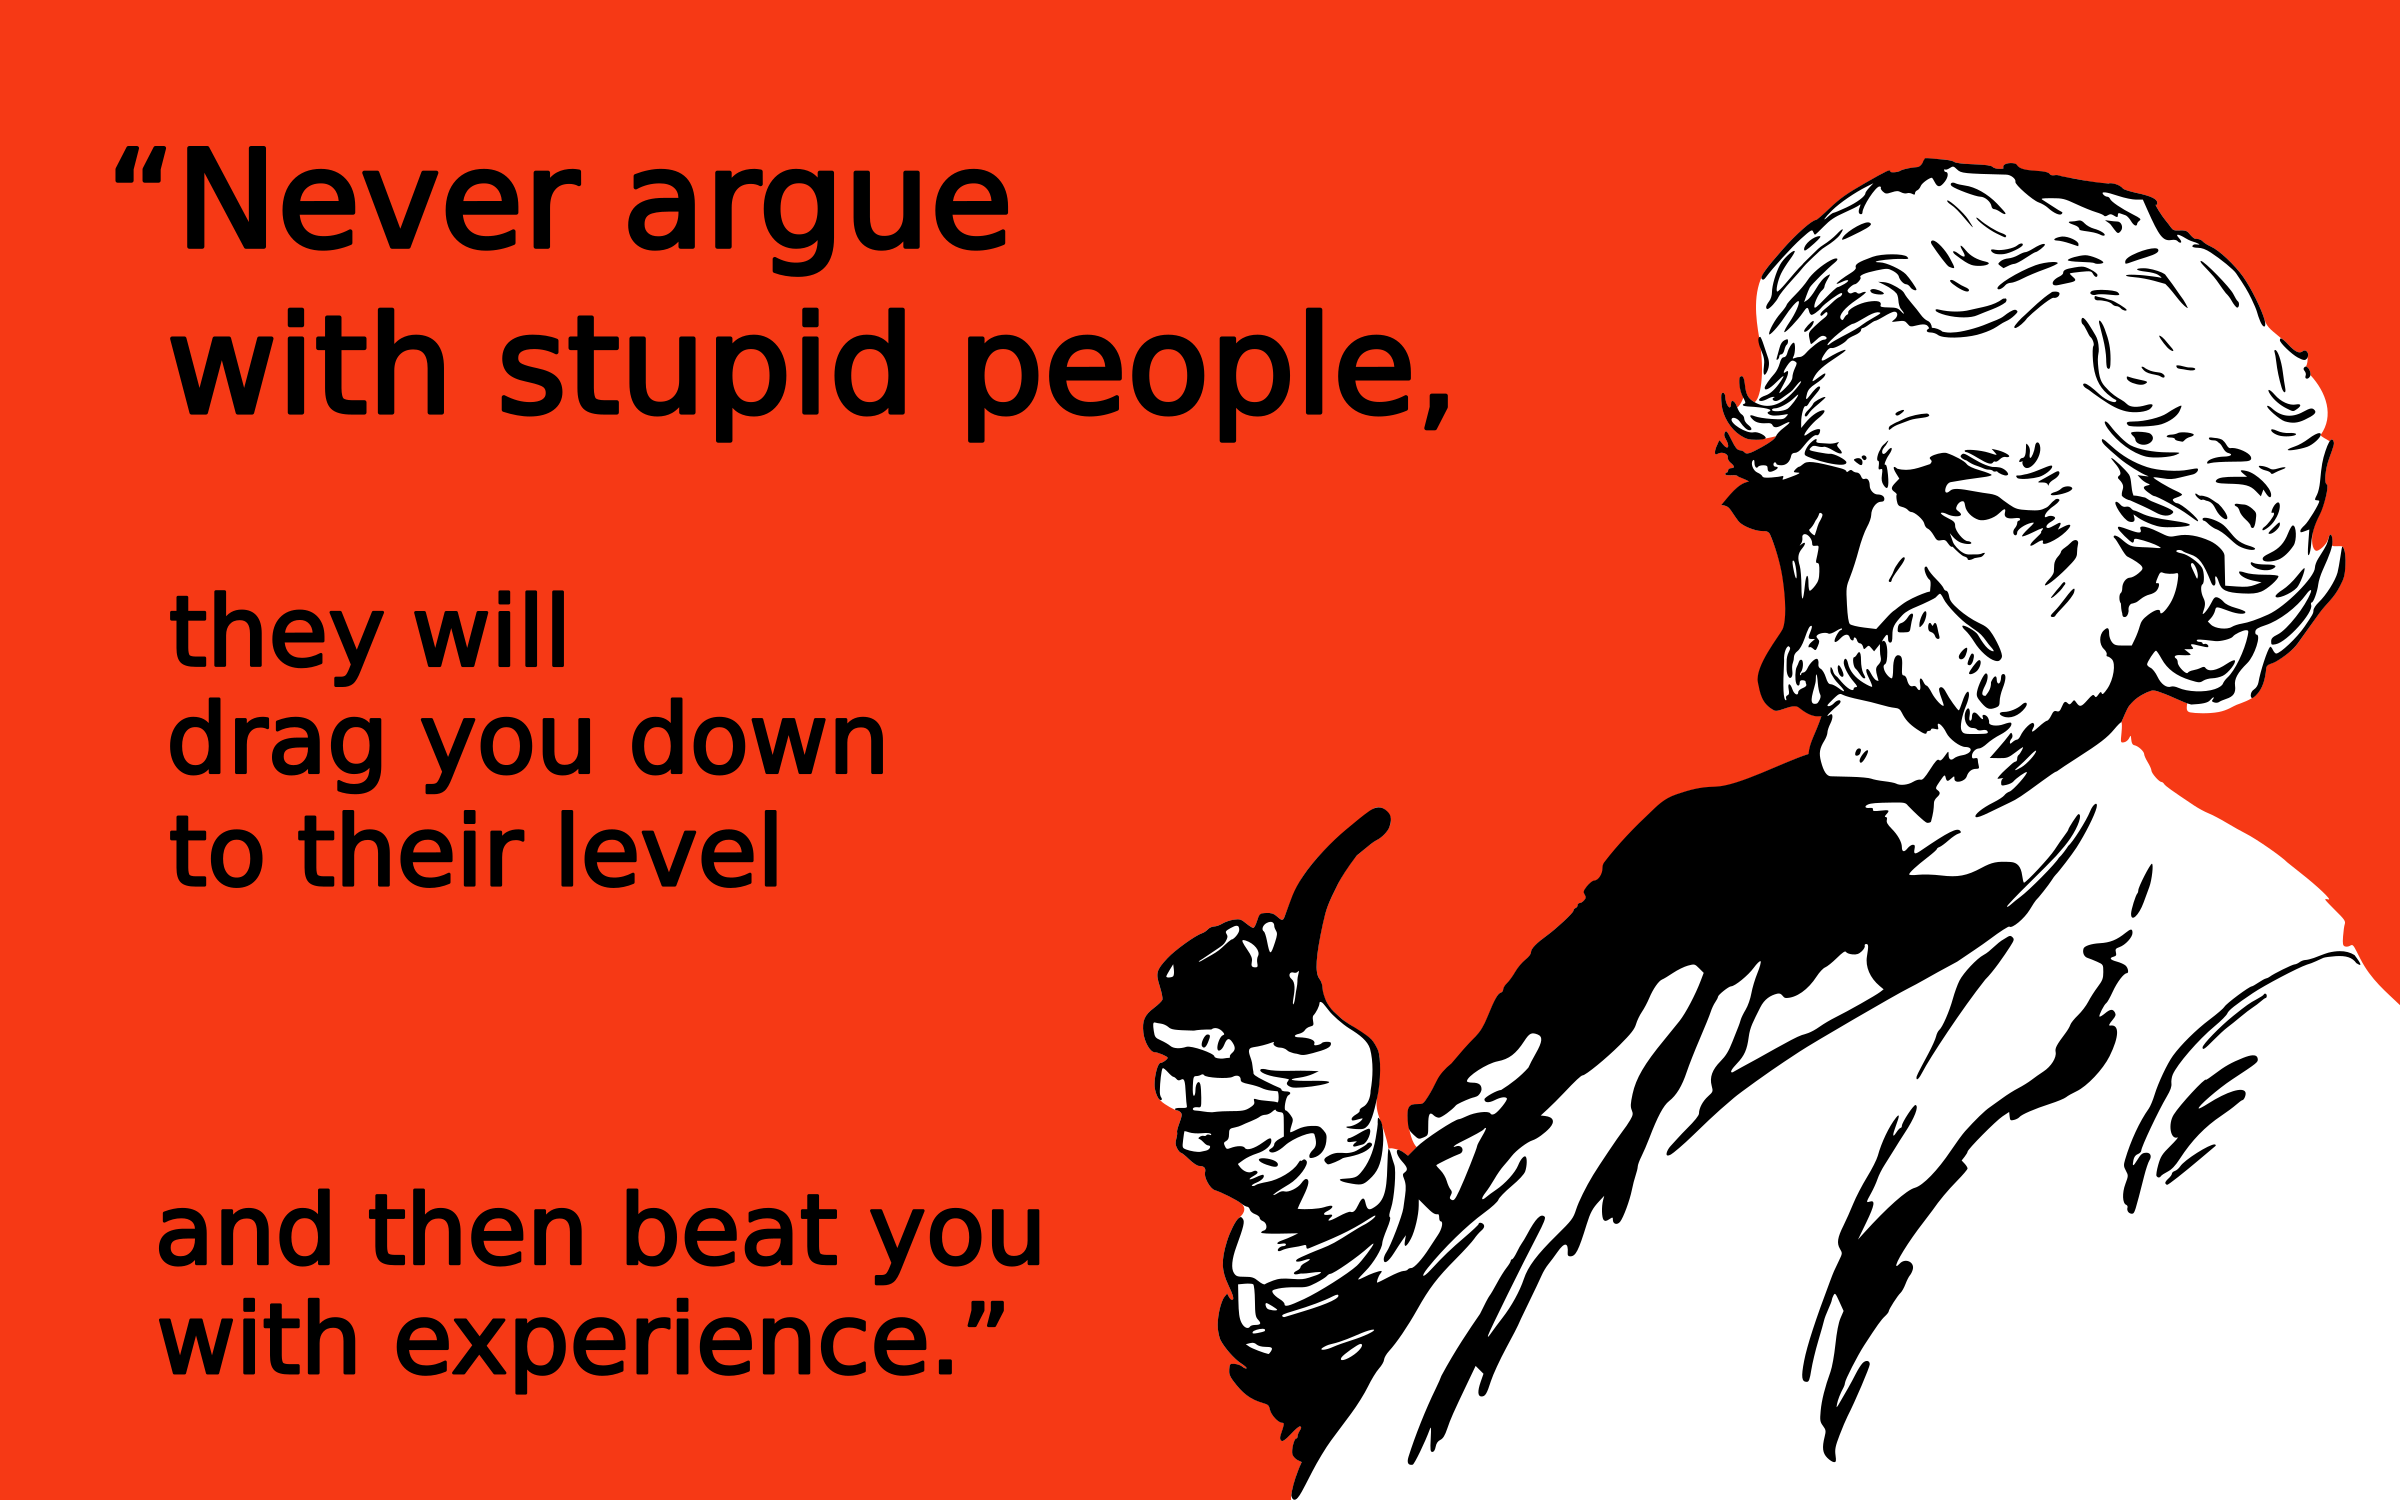 Never argue with stupid people by Lazur URH